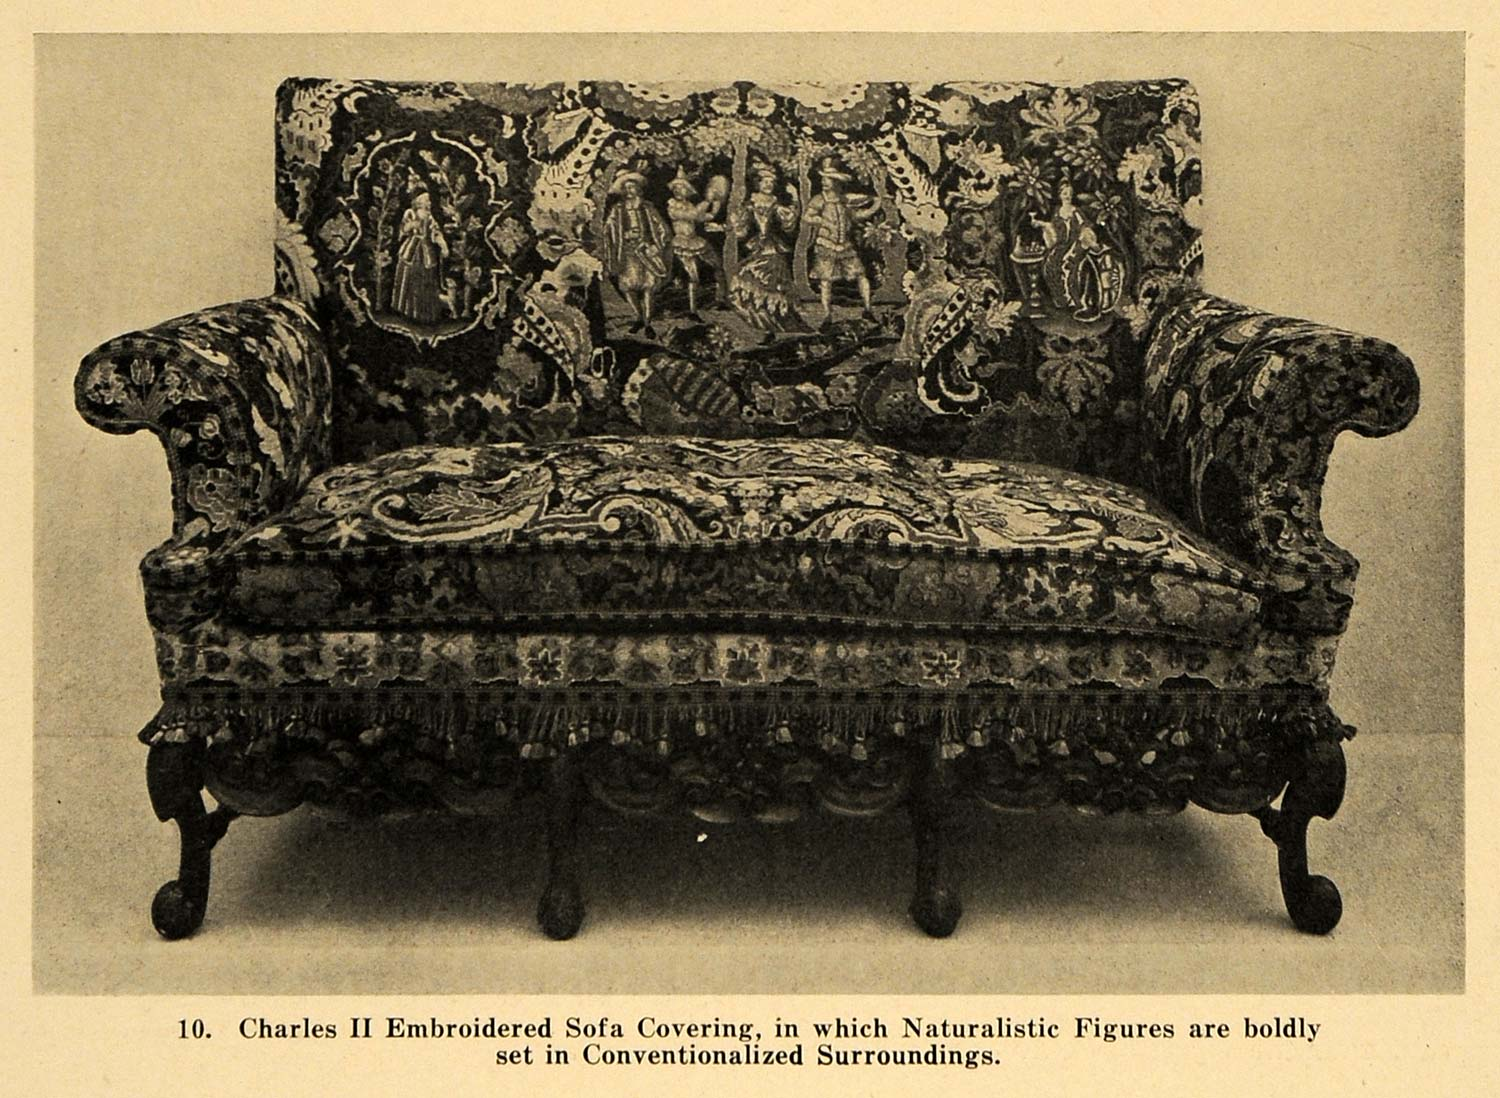 1921 Print Charles II Embroidered Sofa Upholstery Cover ORIGINAL HISTORIC GF4